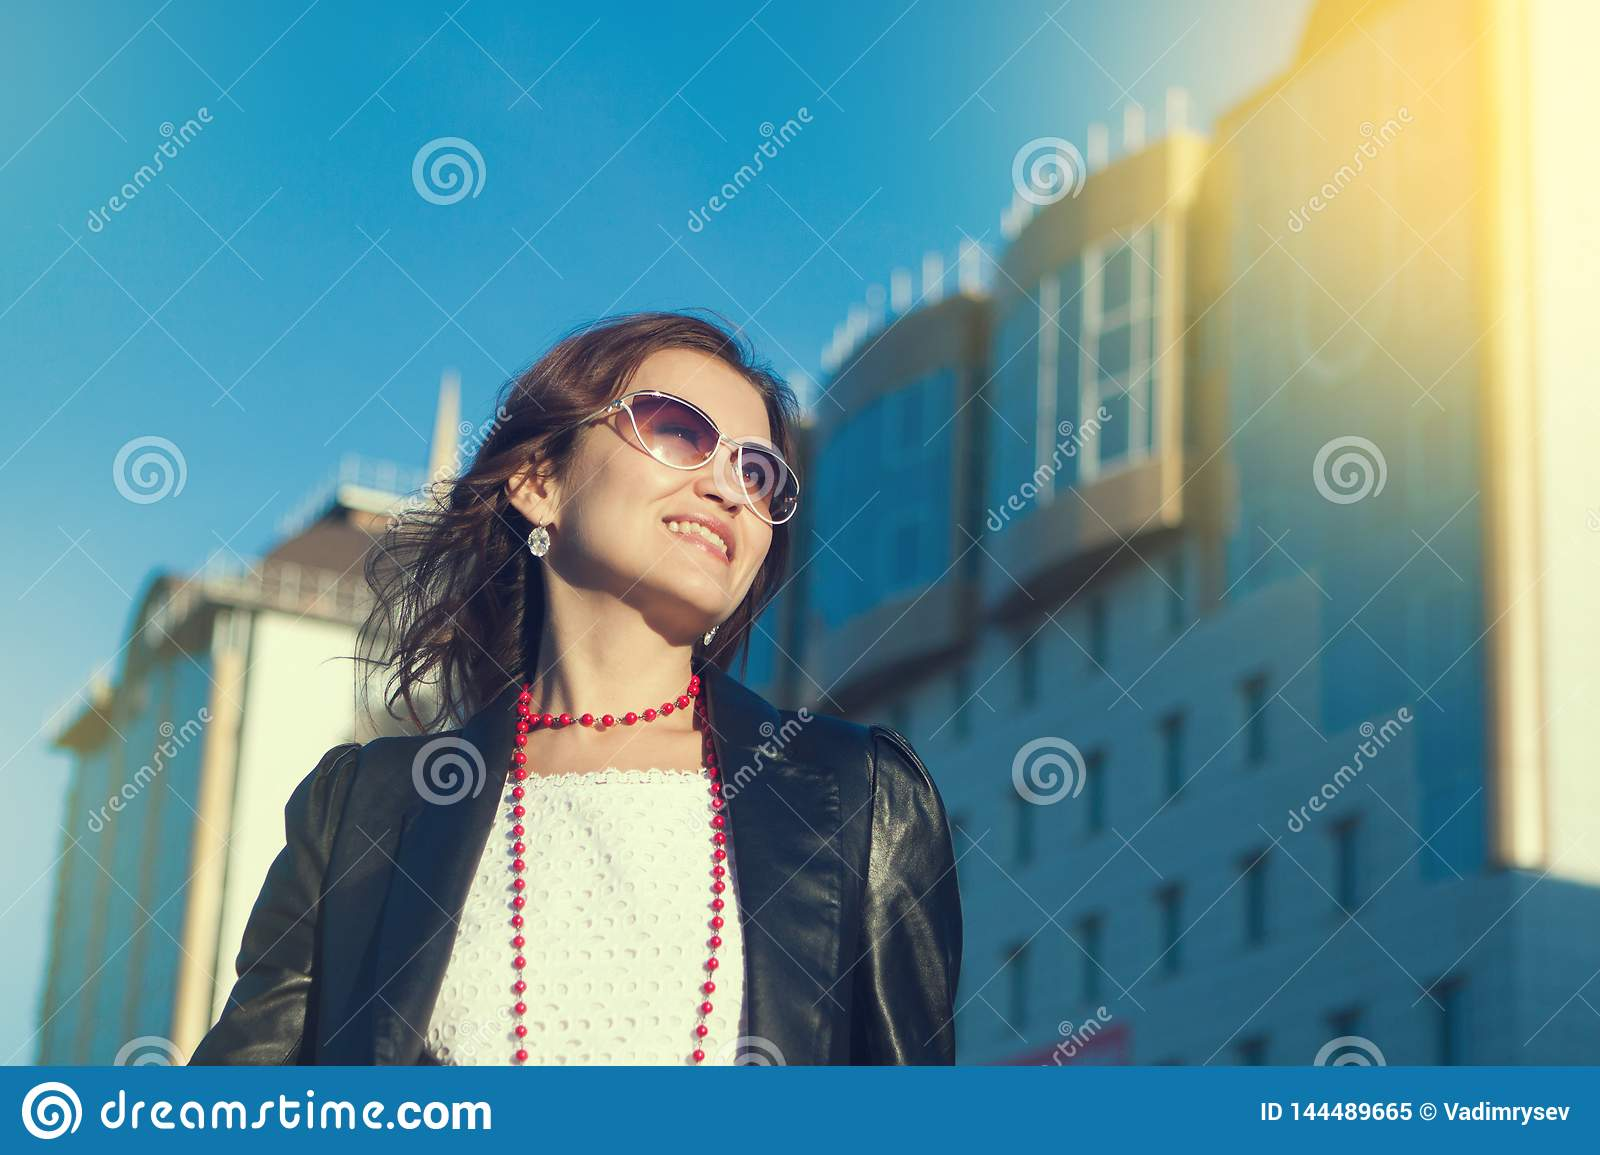 Happy young woman walking on a city street.